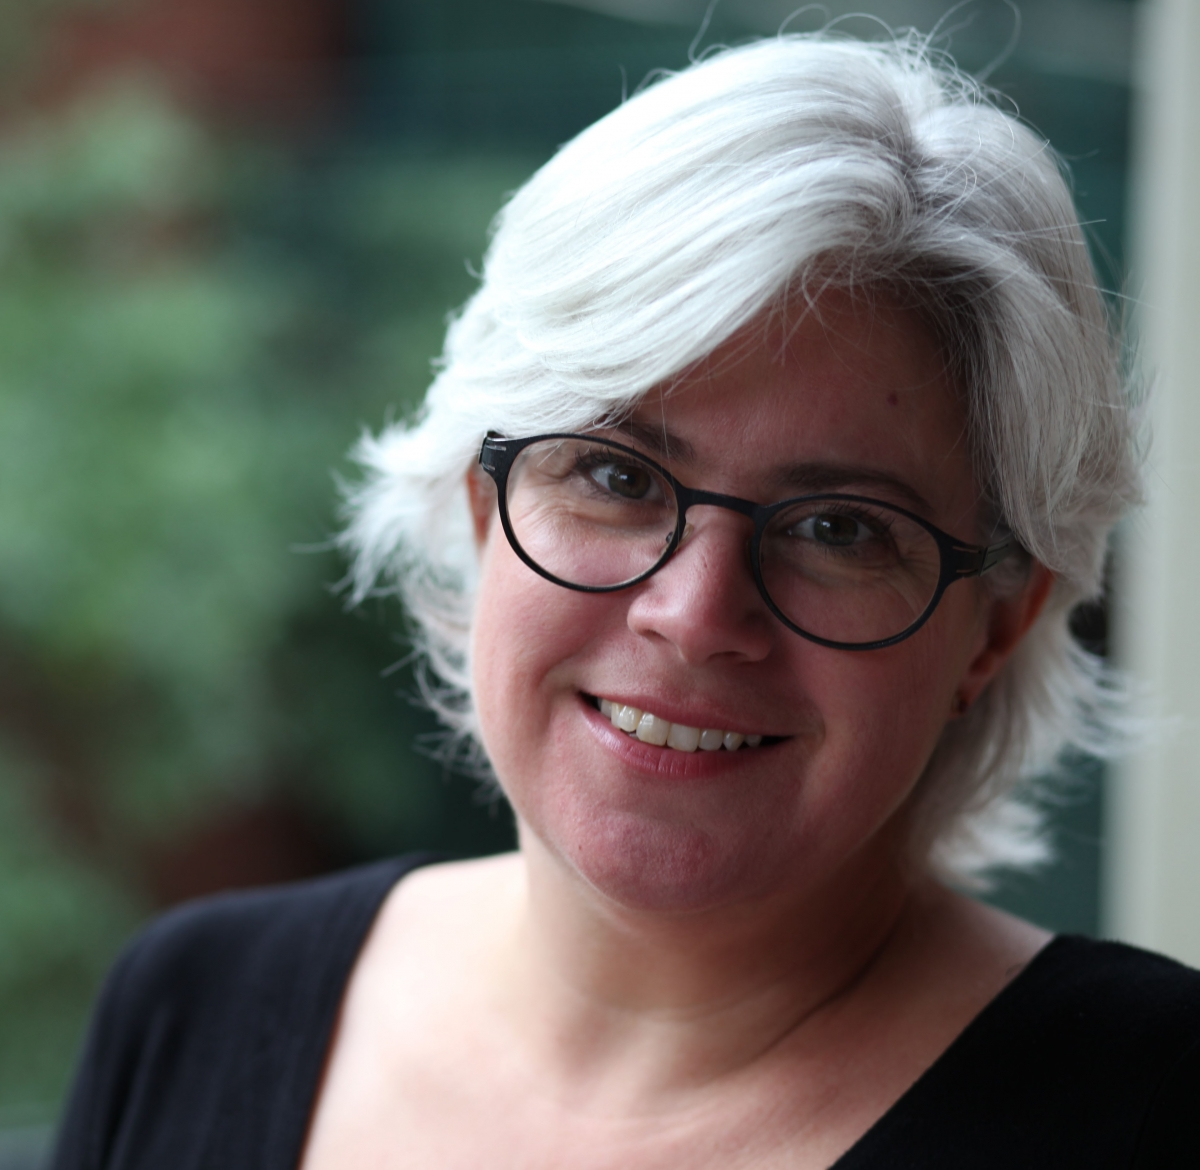 Heidi McBride is a researcher at the Montreal Neurological Institute and Hospital.